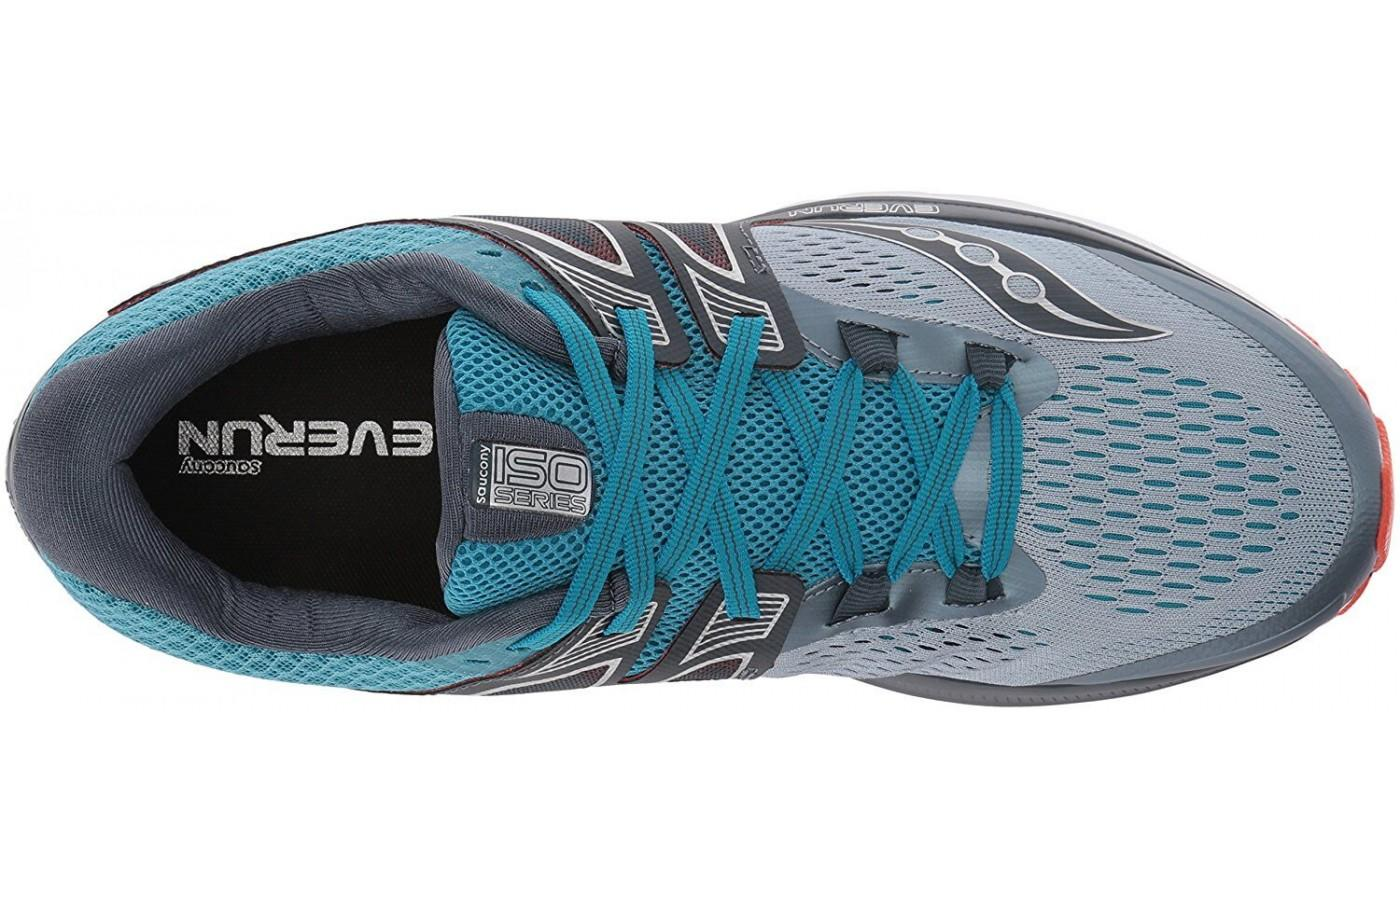 Top view of the ISOFIT upper of the Saucony Triumph ISO 3 running shoe